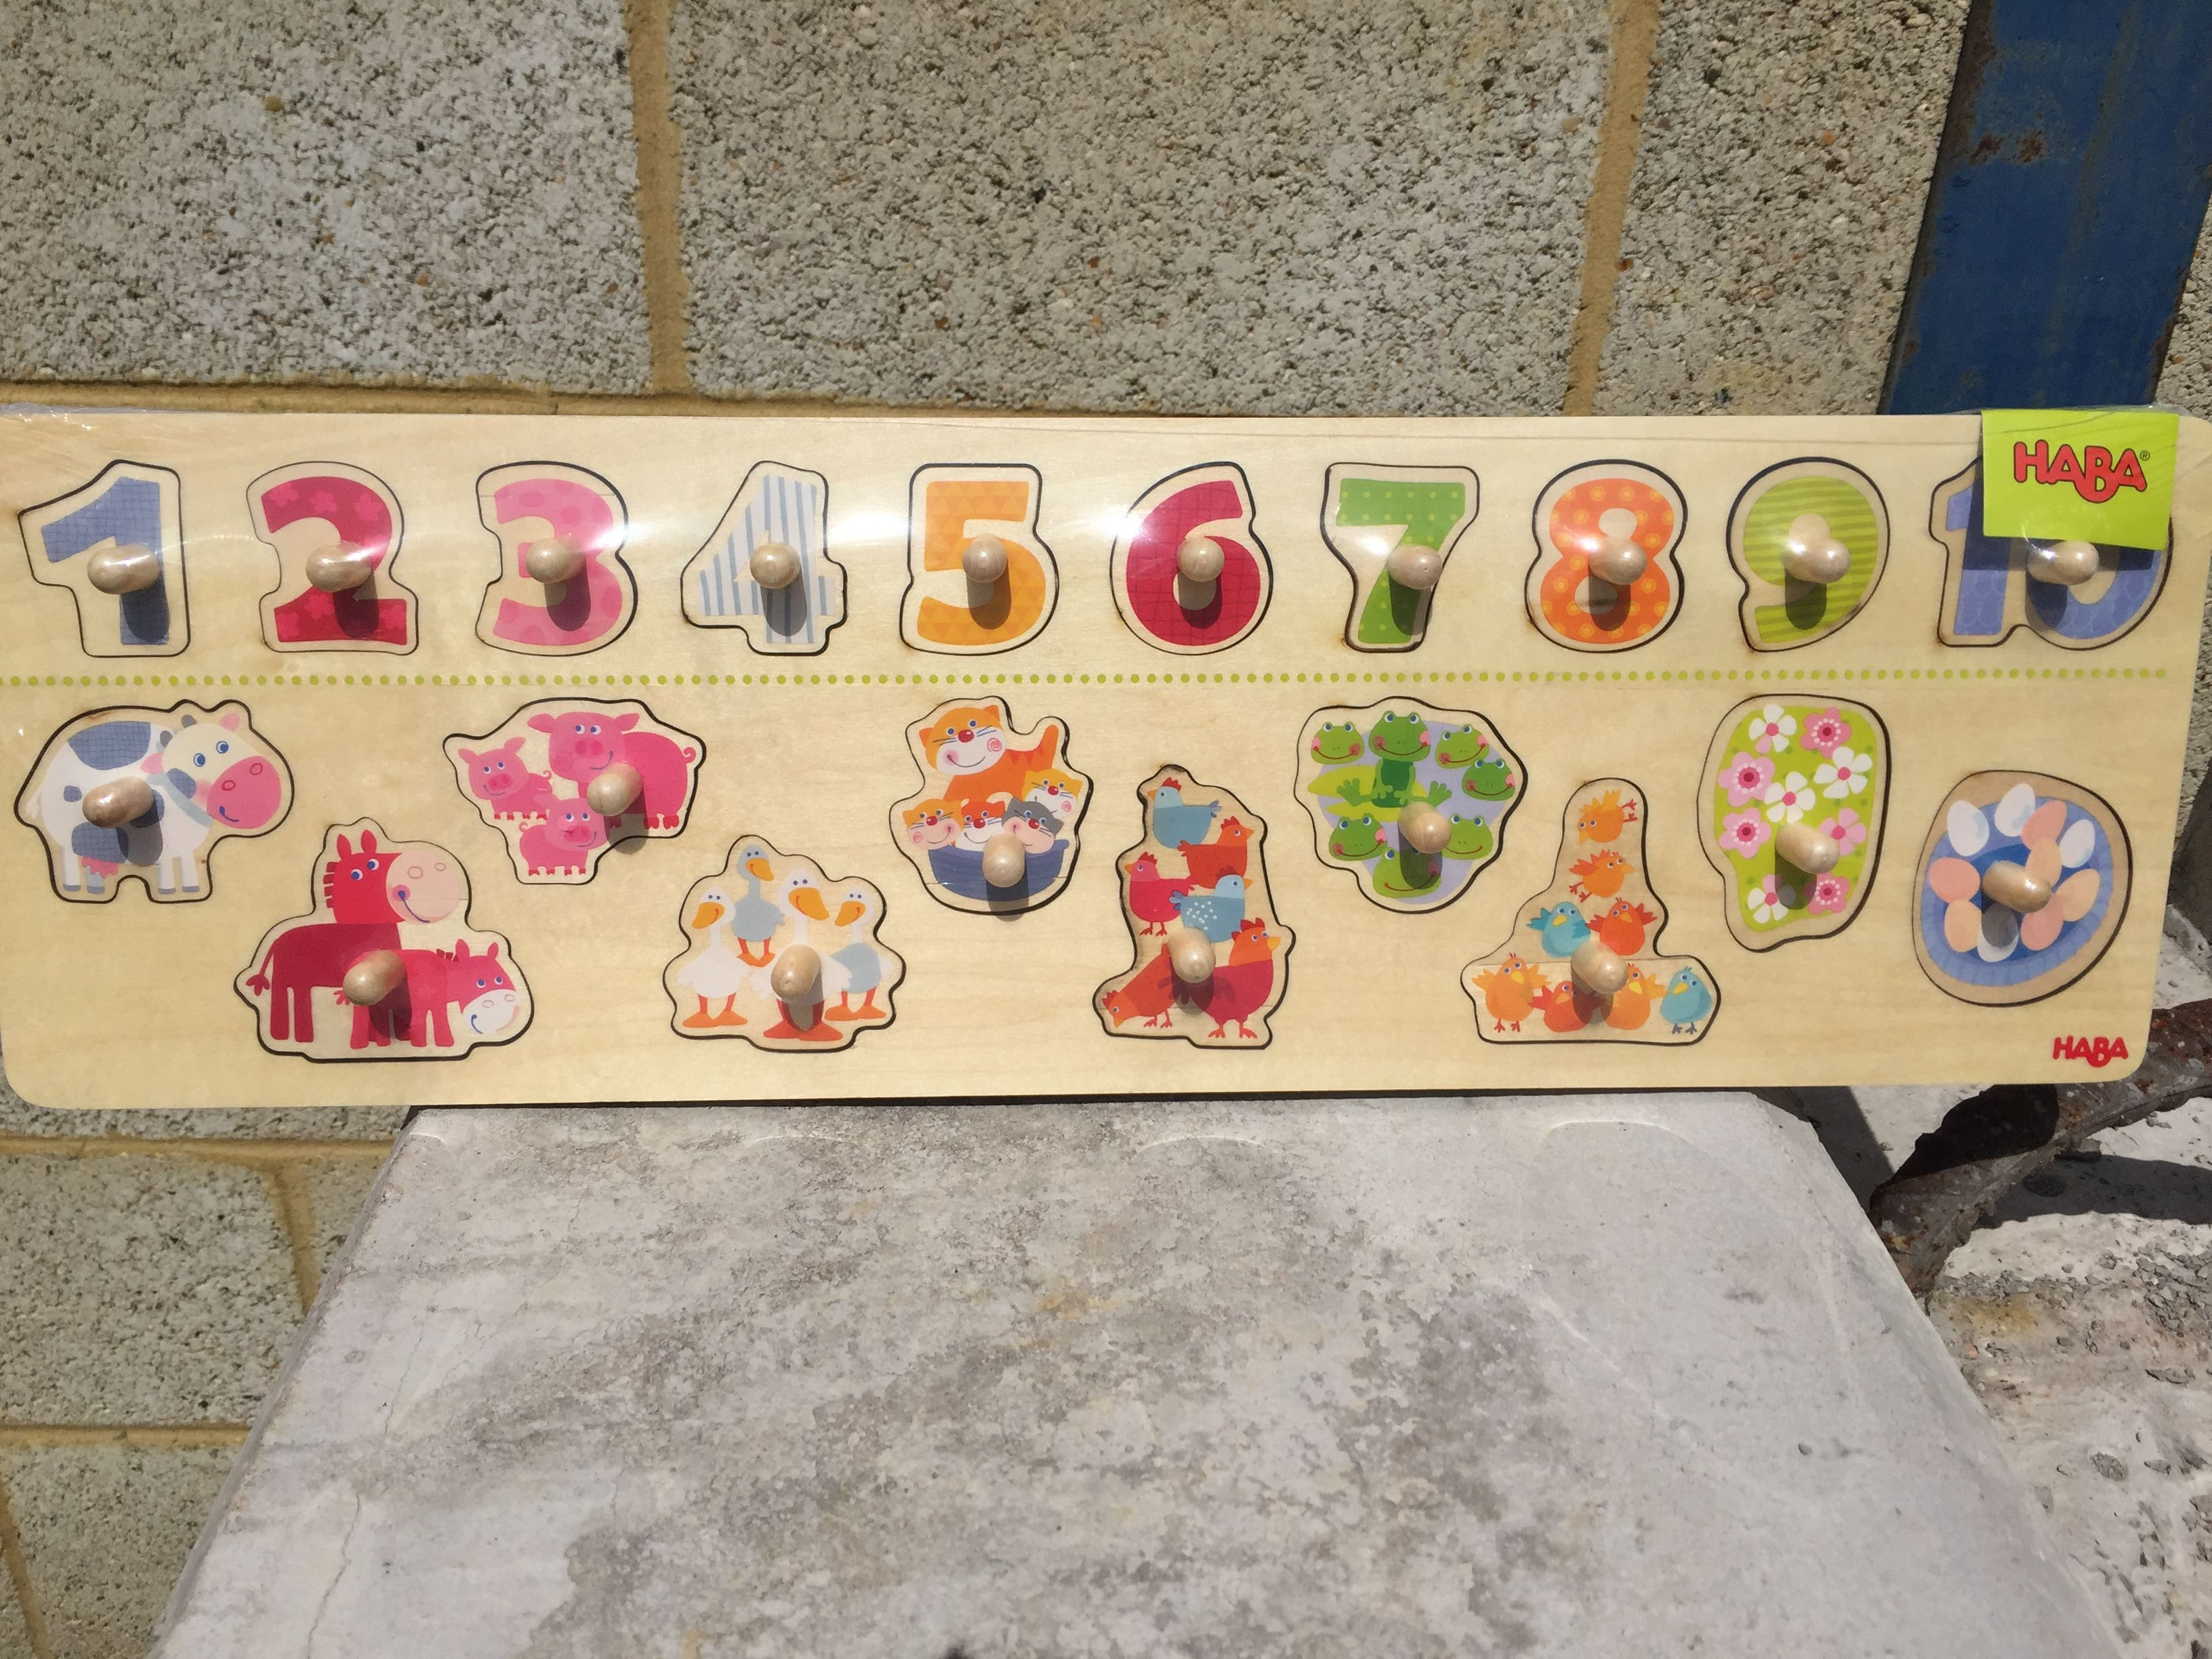 Haba Clutching Puzzle Animals By Number   //playroom In 2019